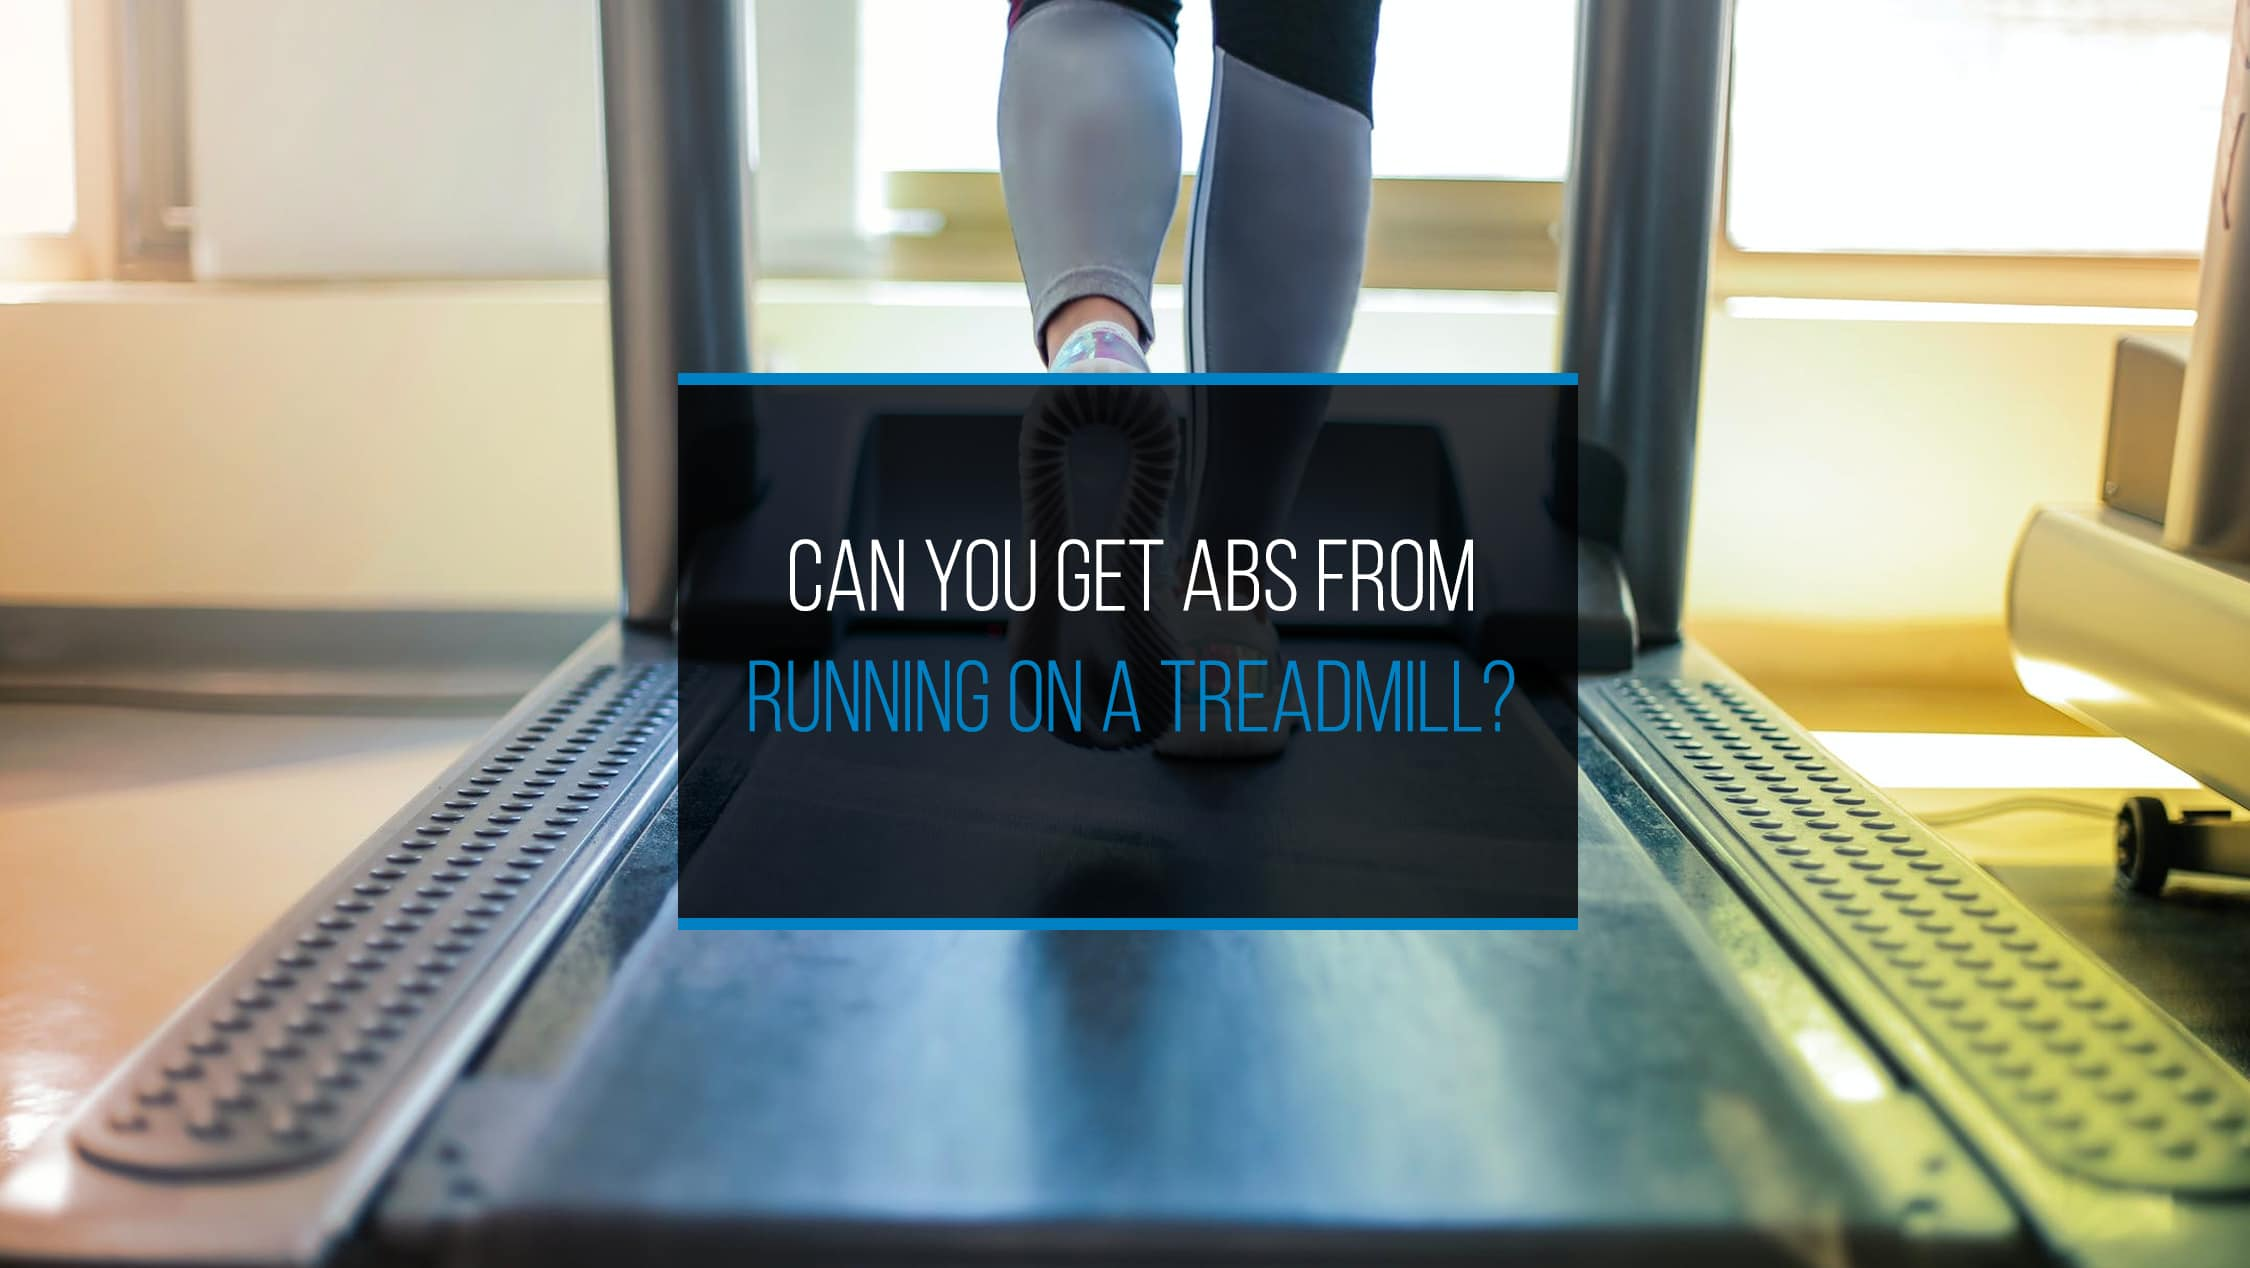 Can You Get Abs From Running on a Treadmill?